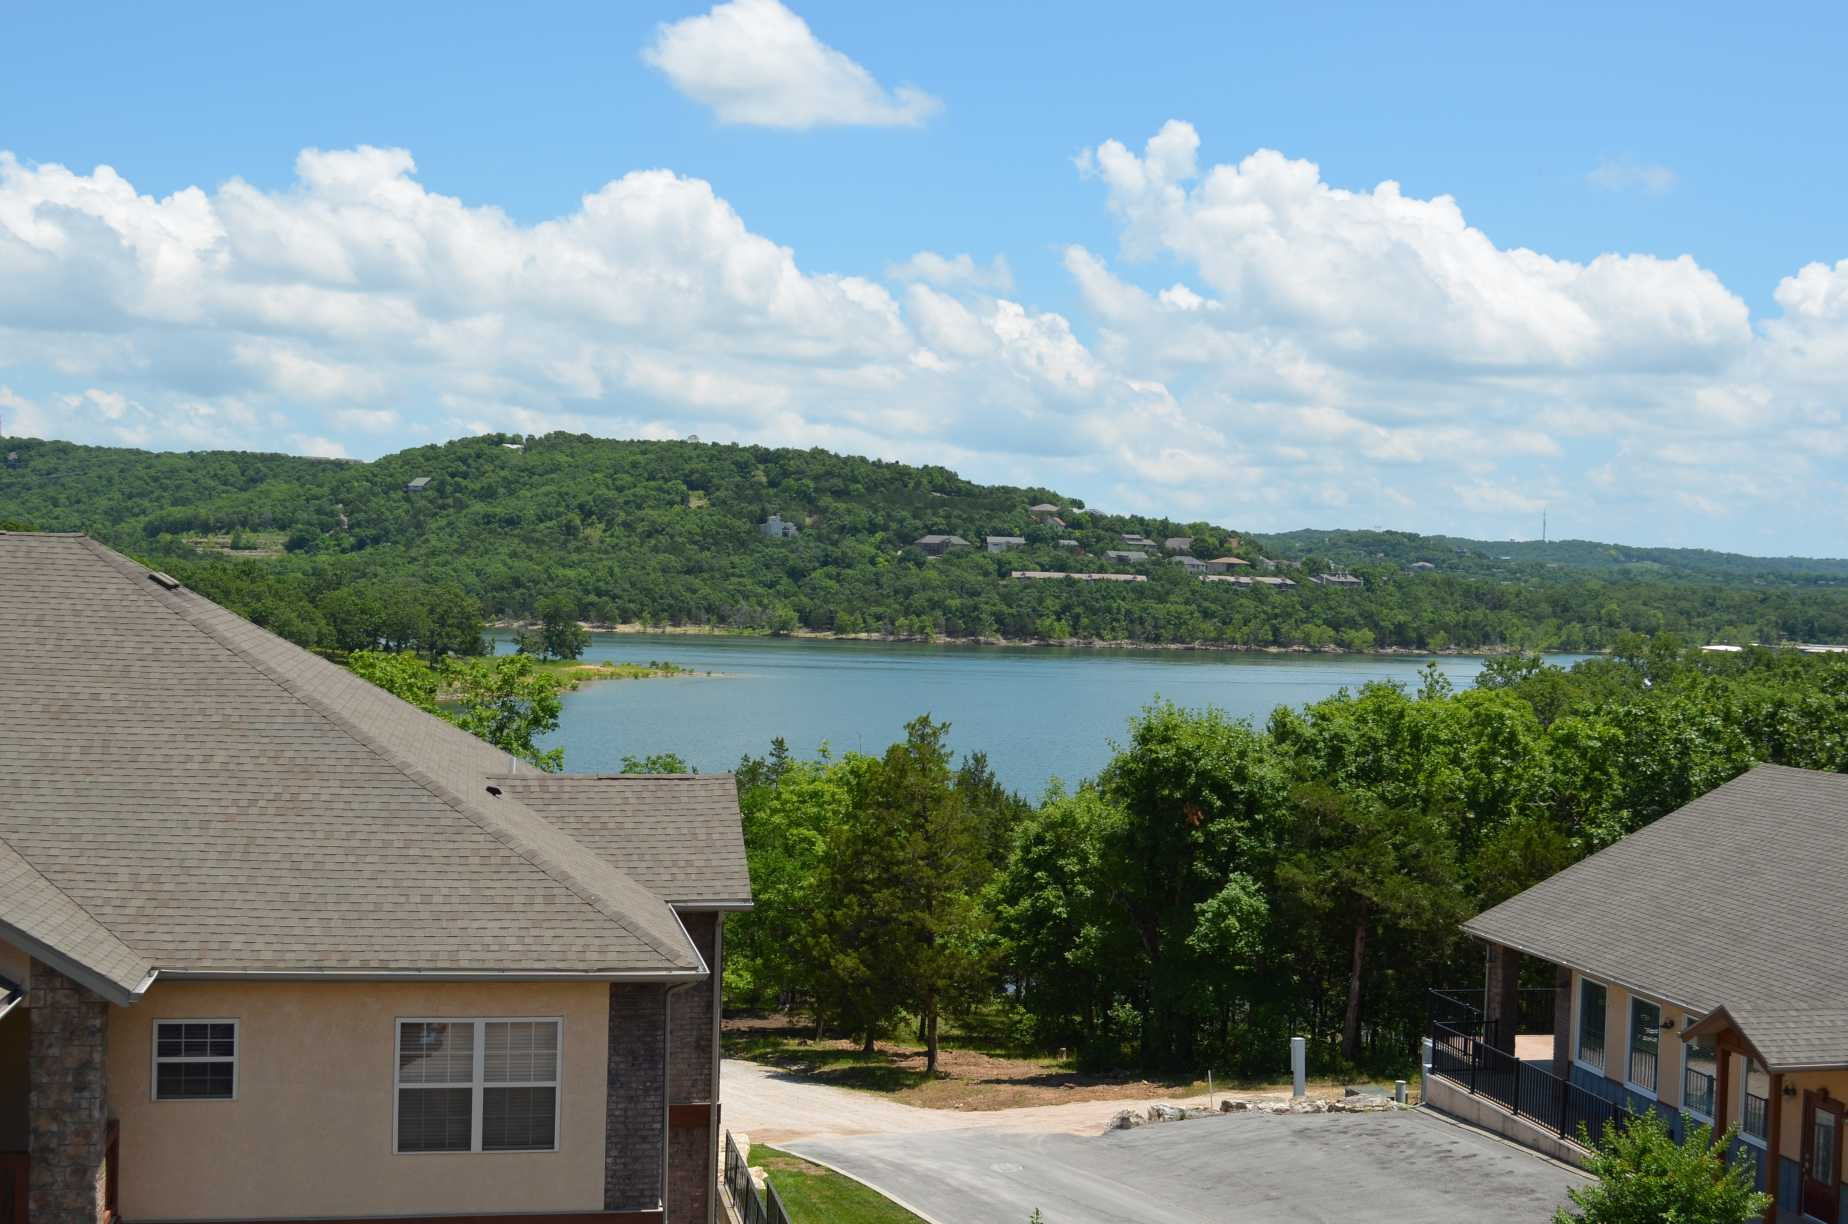 lakeview-from-the-balcony-at-rockwood-condo-25